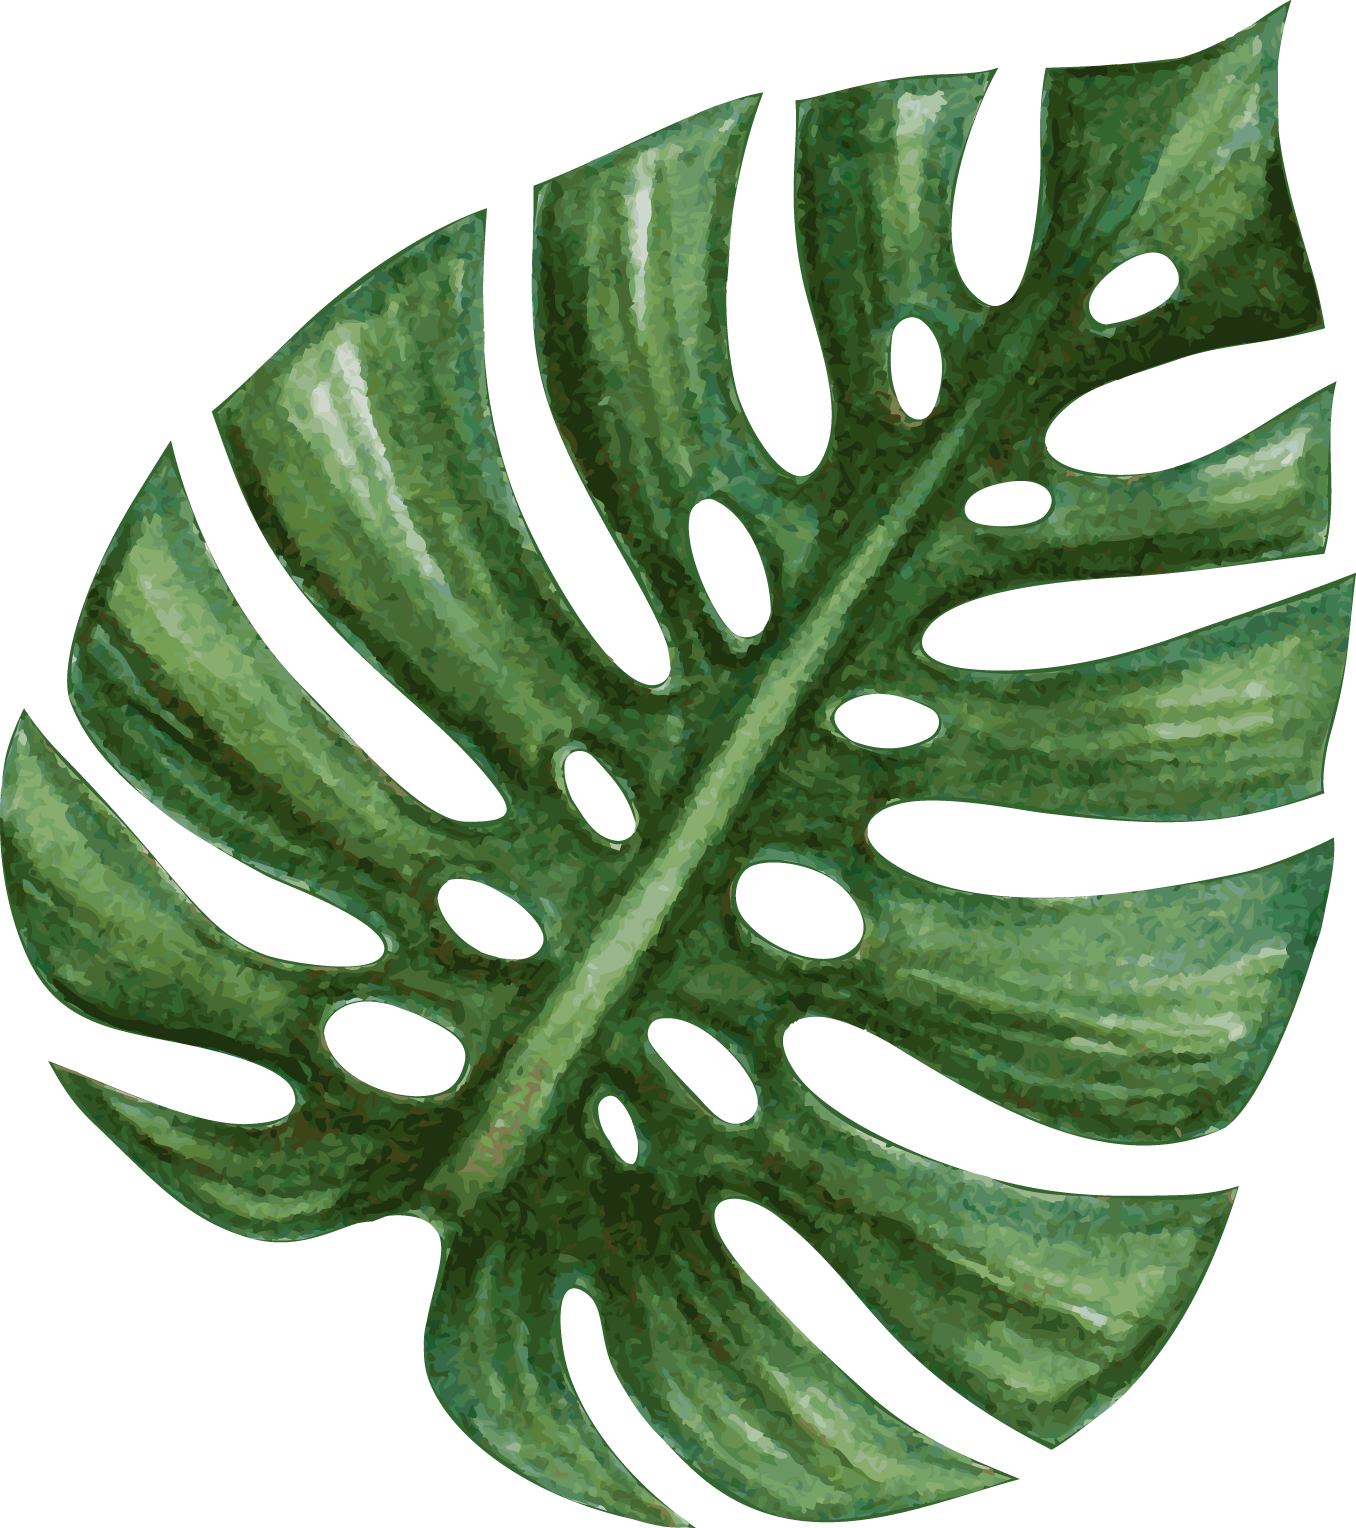 palm07.png